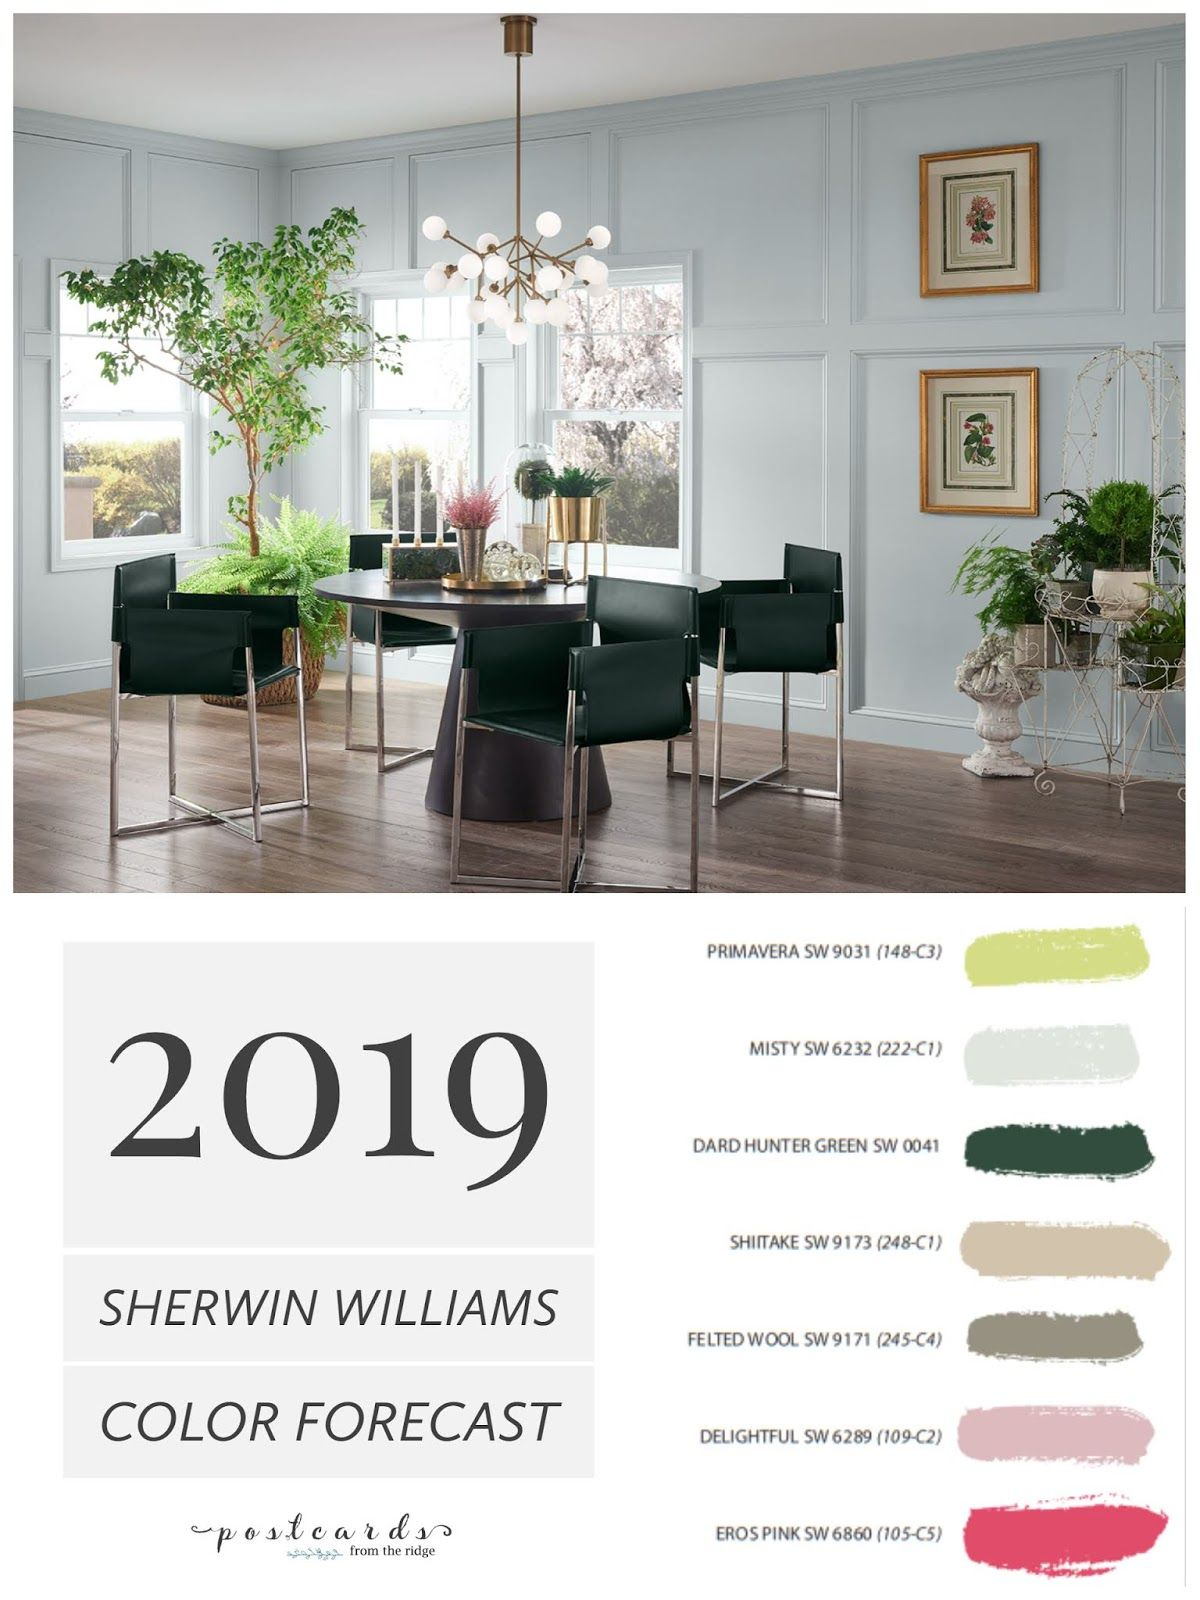 2019 Paint Color Forecast From Sherwin Williams Sherwin Williams Colors Paint Colors For Living Room Sherwin Williams Paint Colors